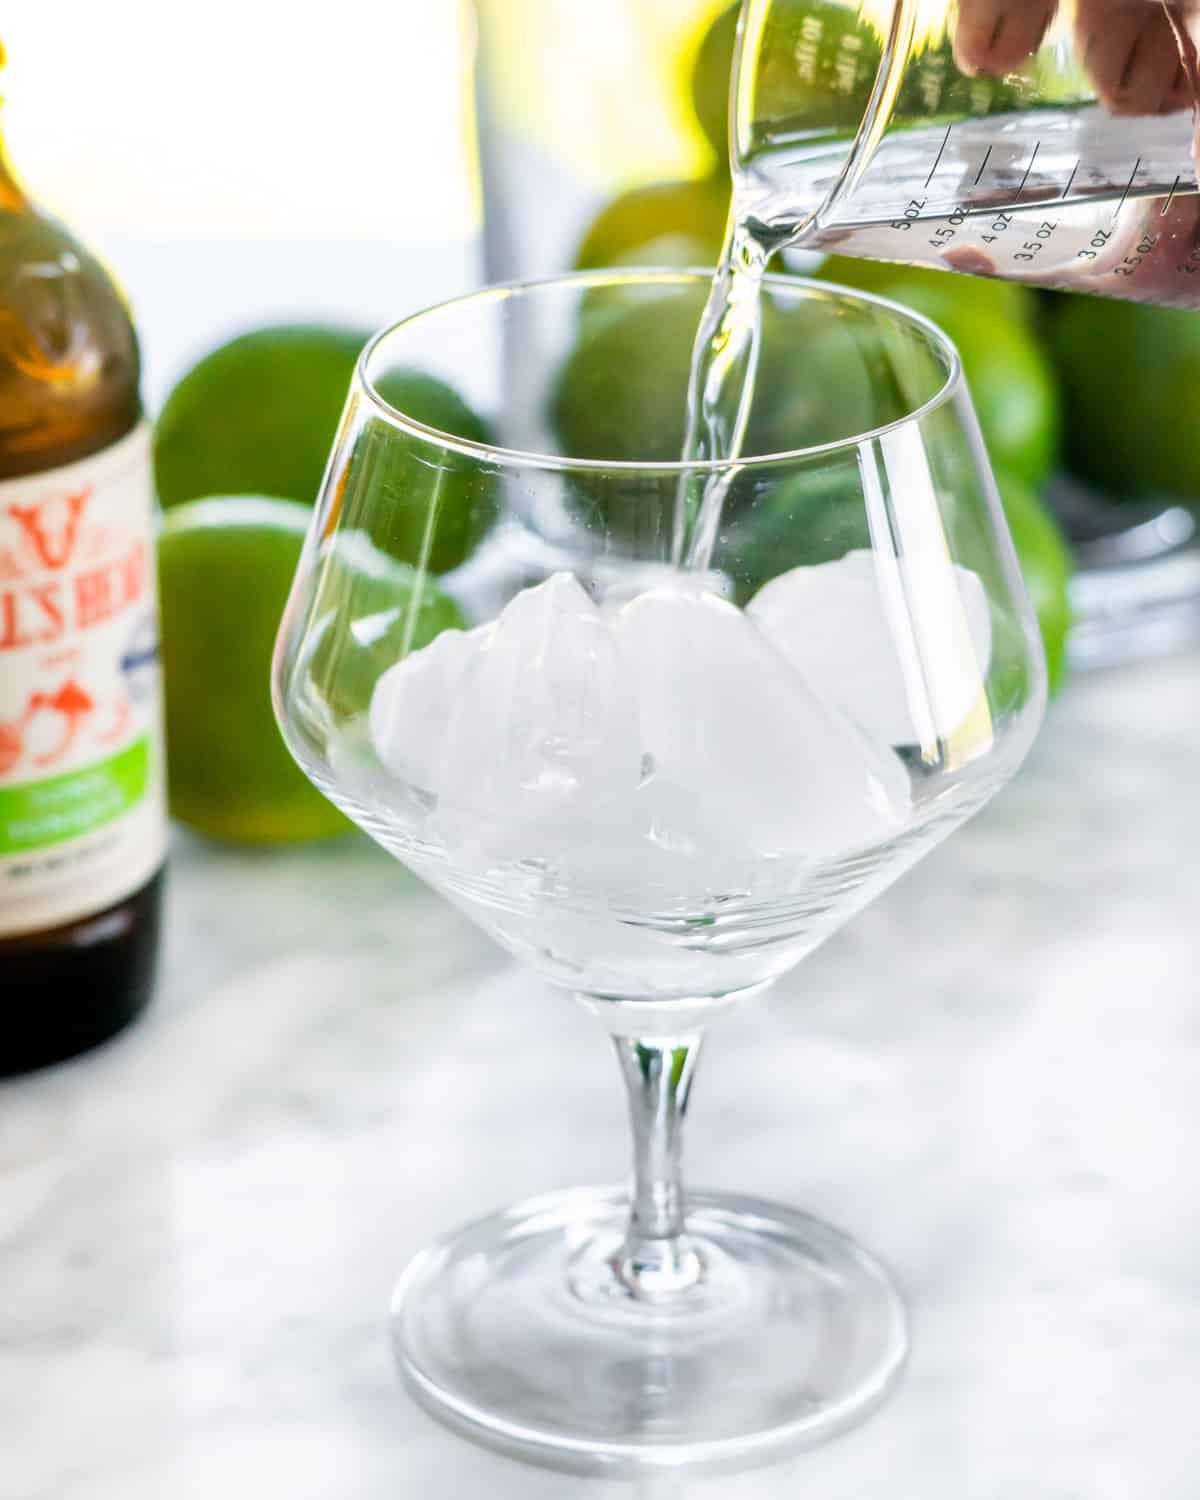 a hand pouring gin into a glass with ice